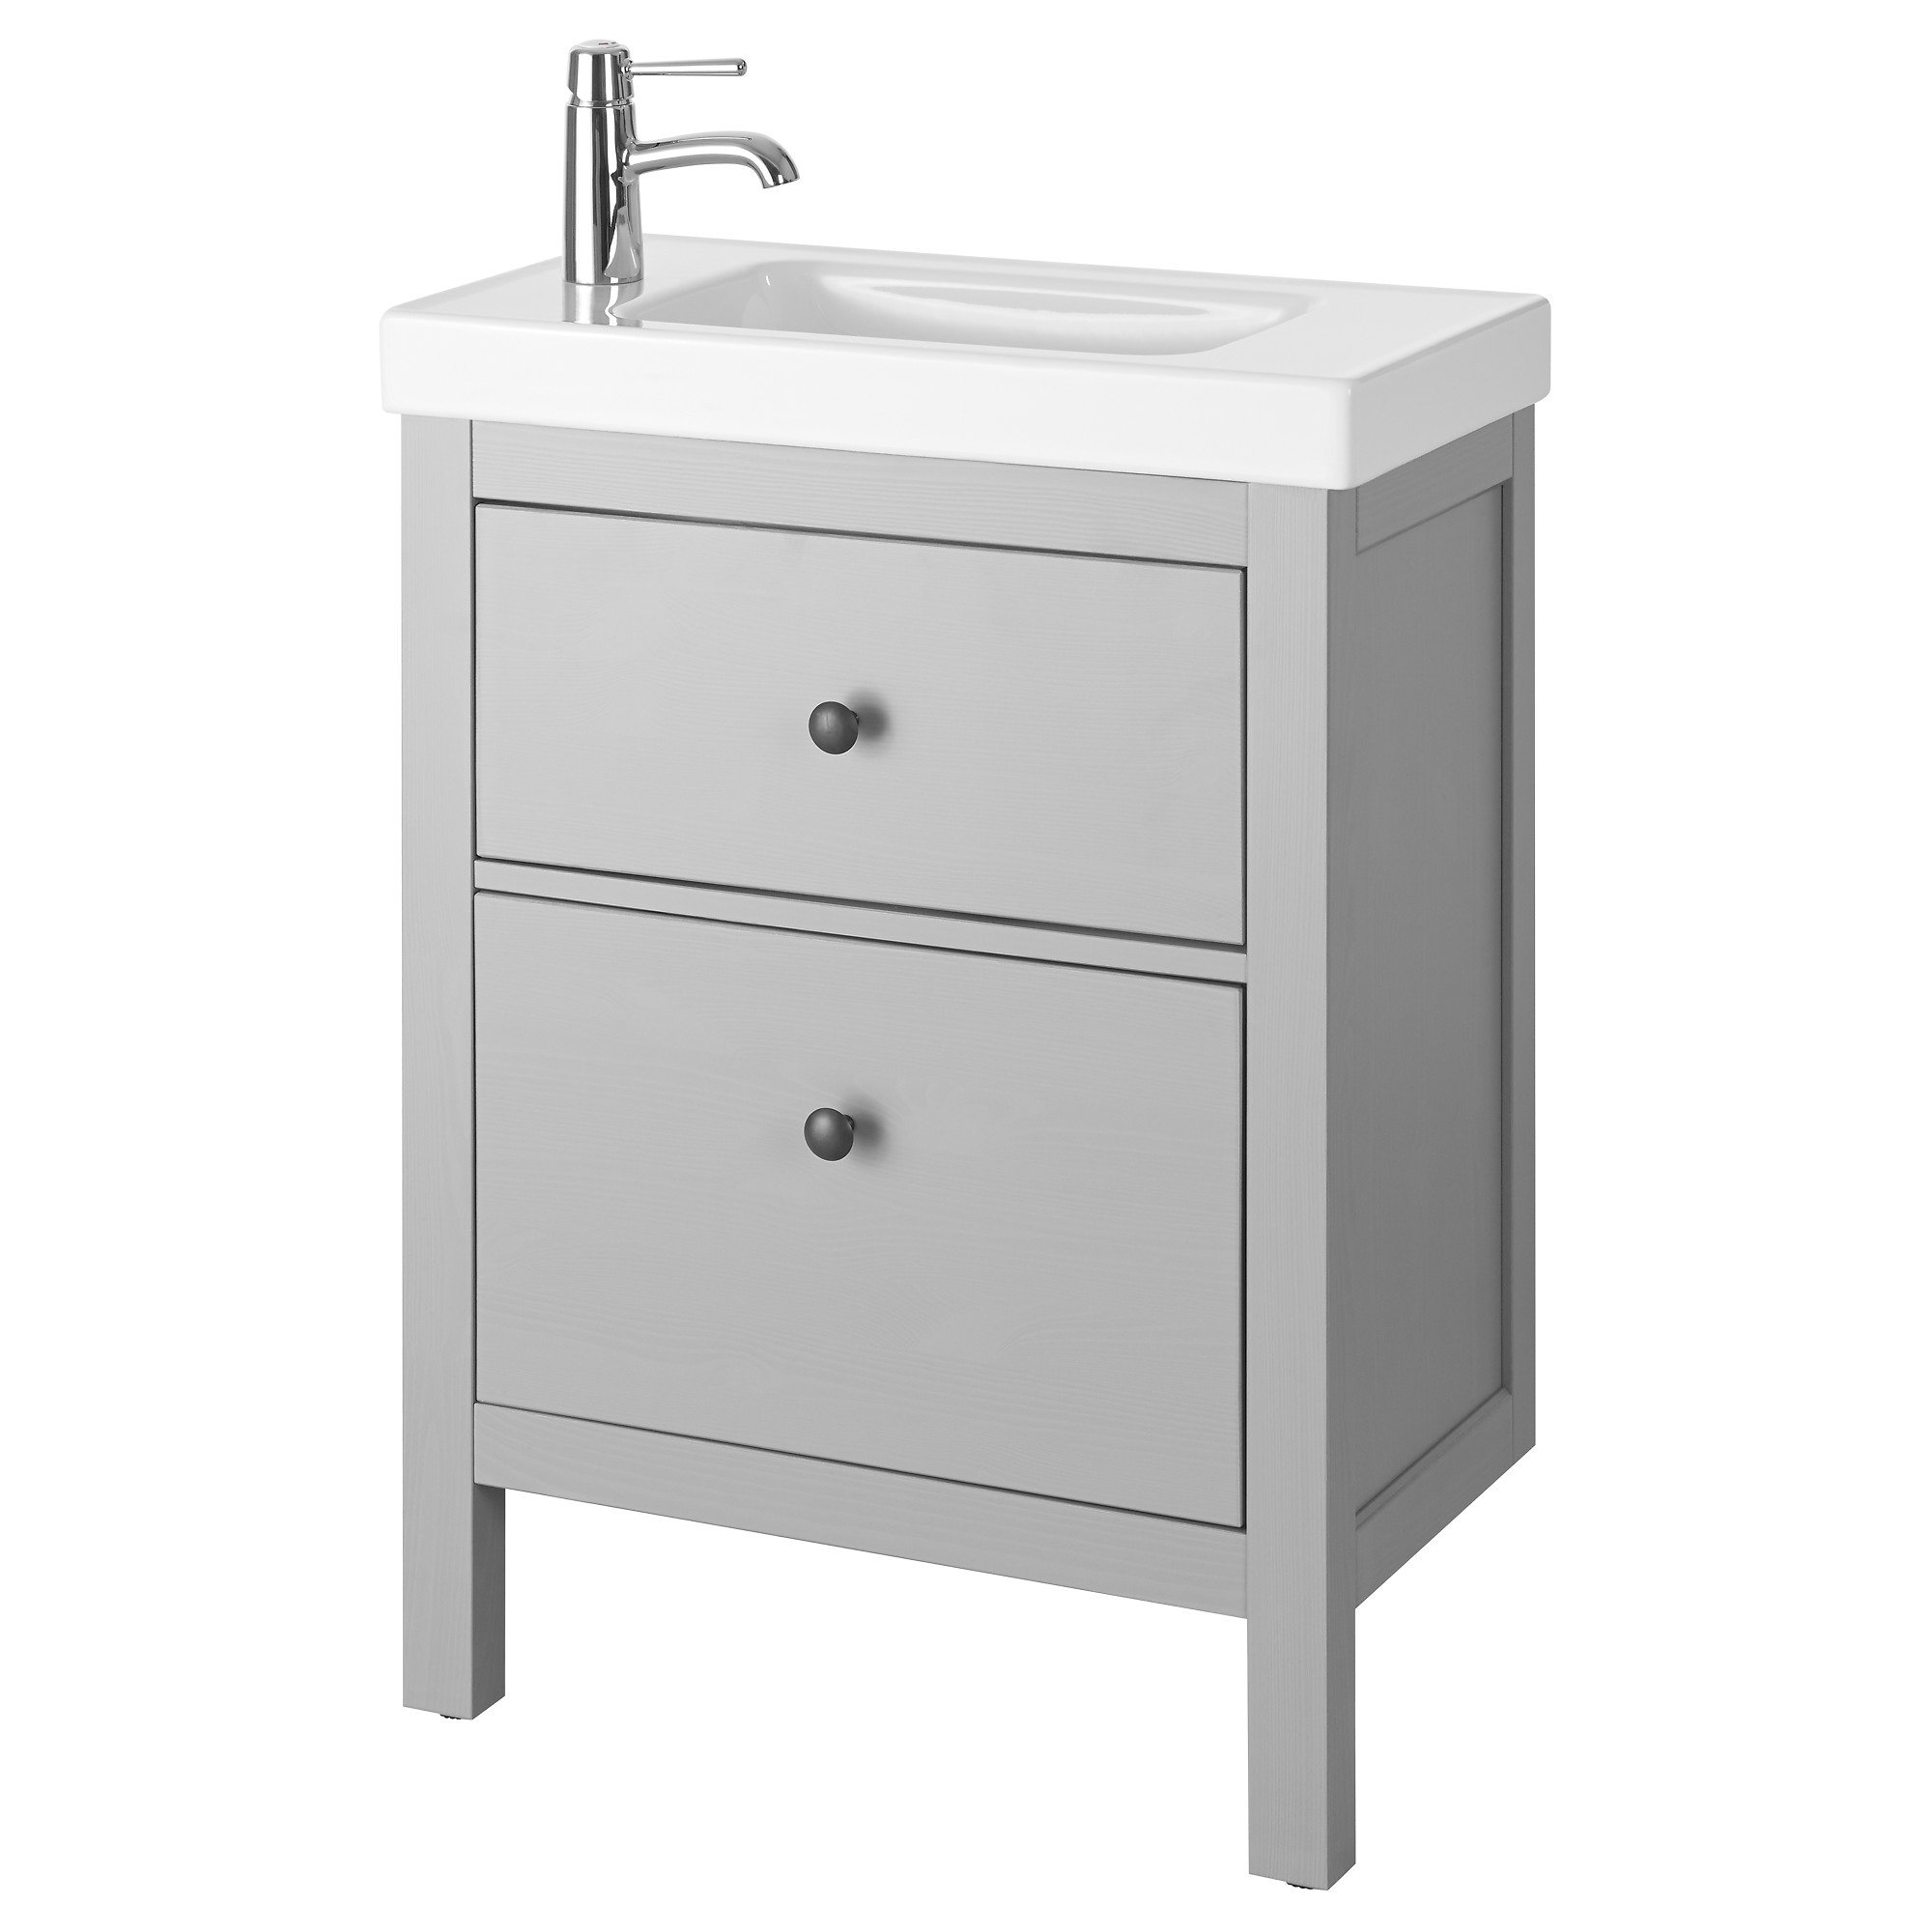 White Bathroom Sink Cabinets hemnes bathroom series. - ikea